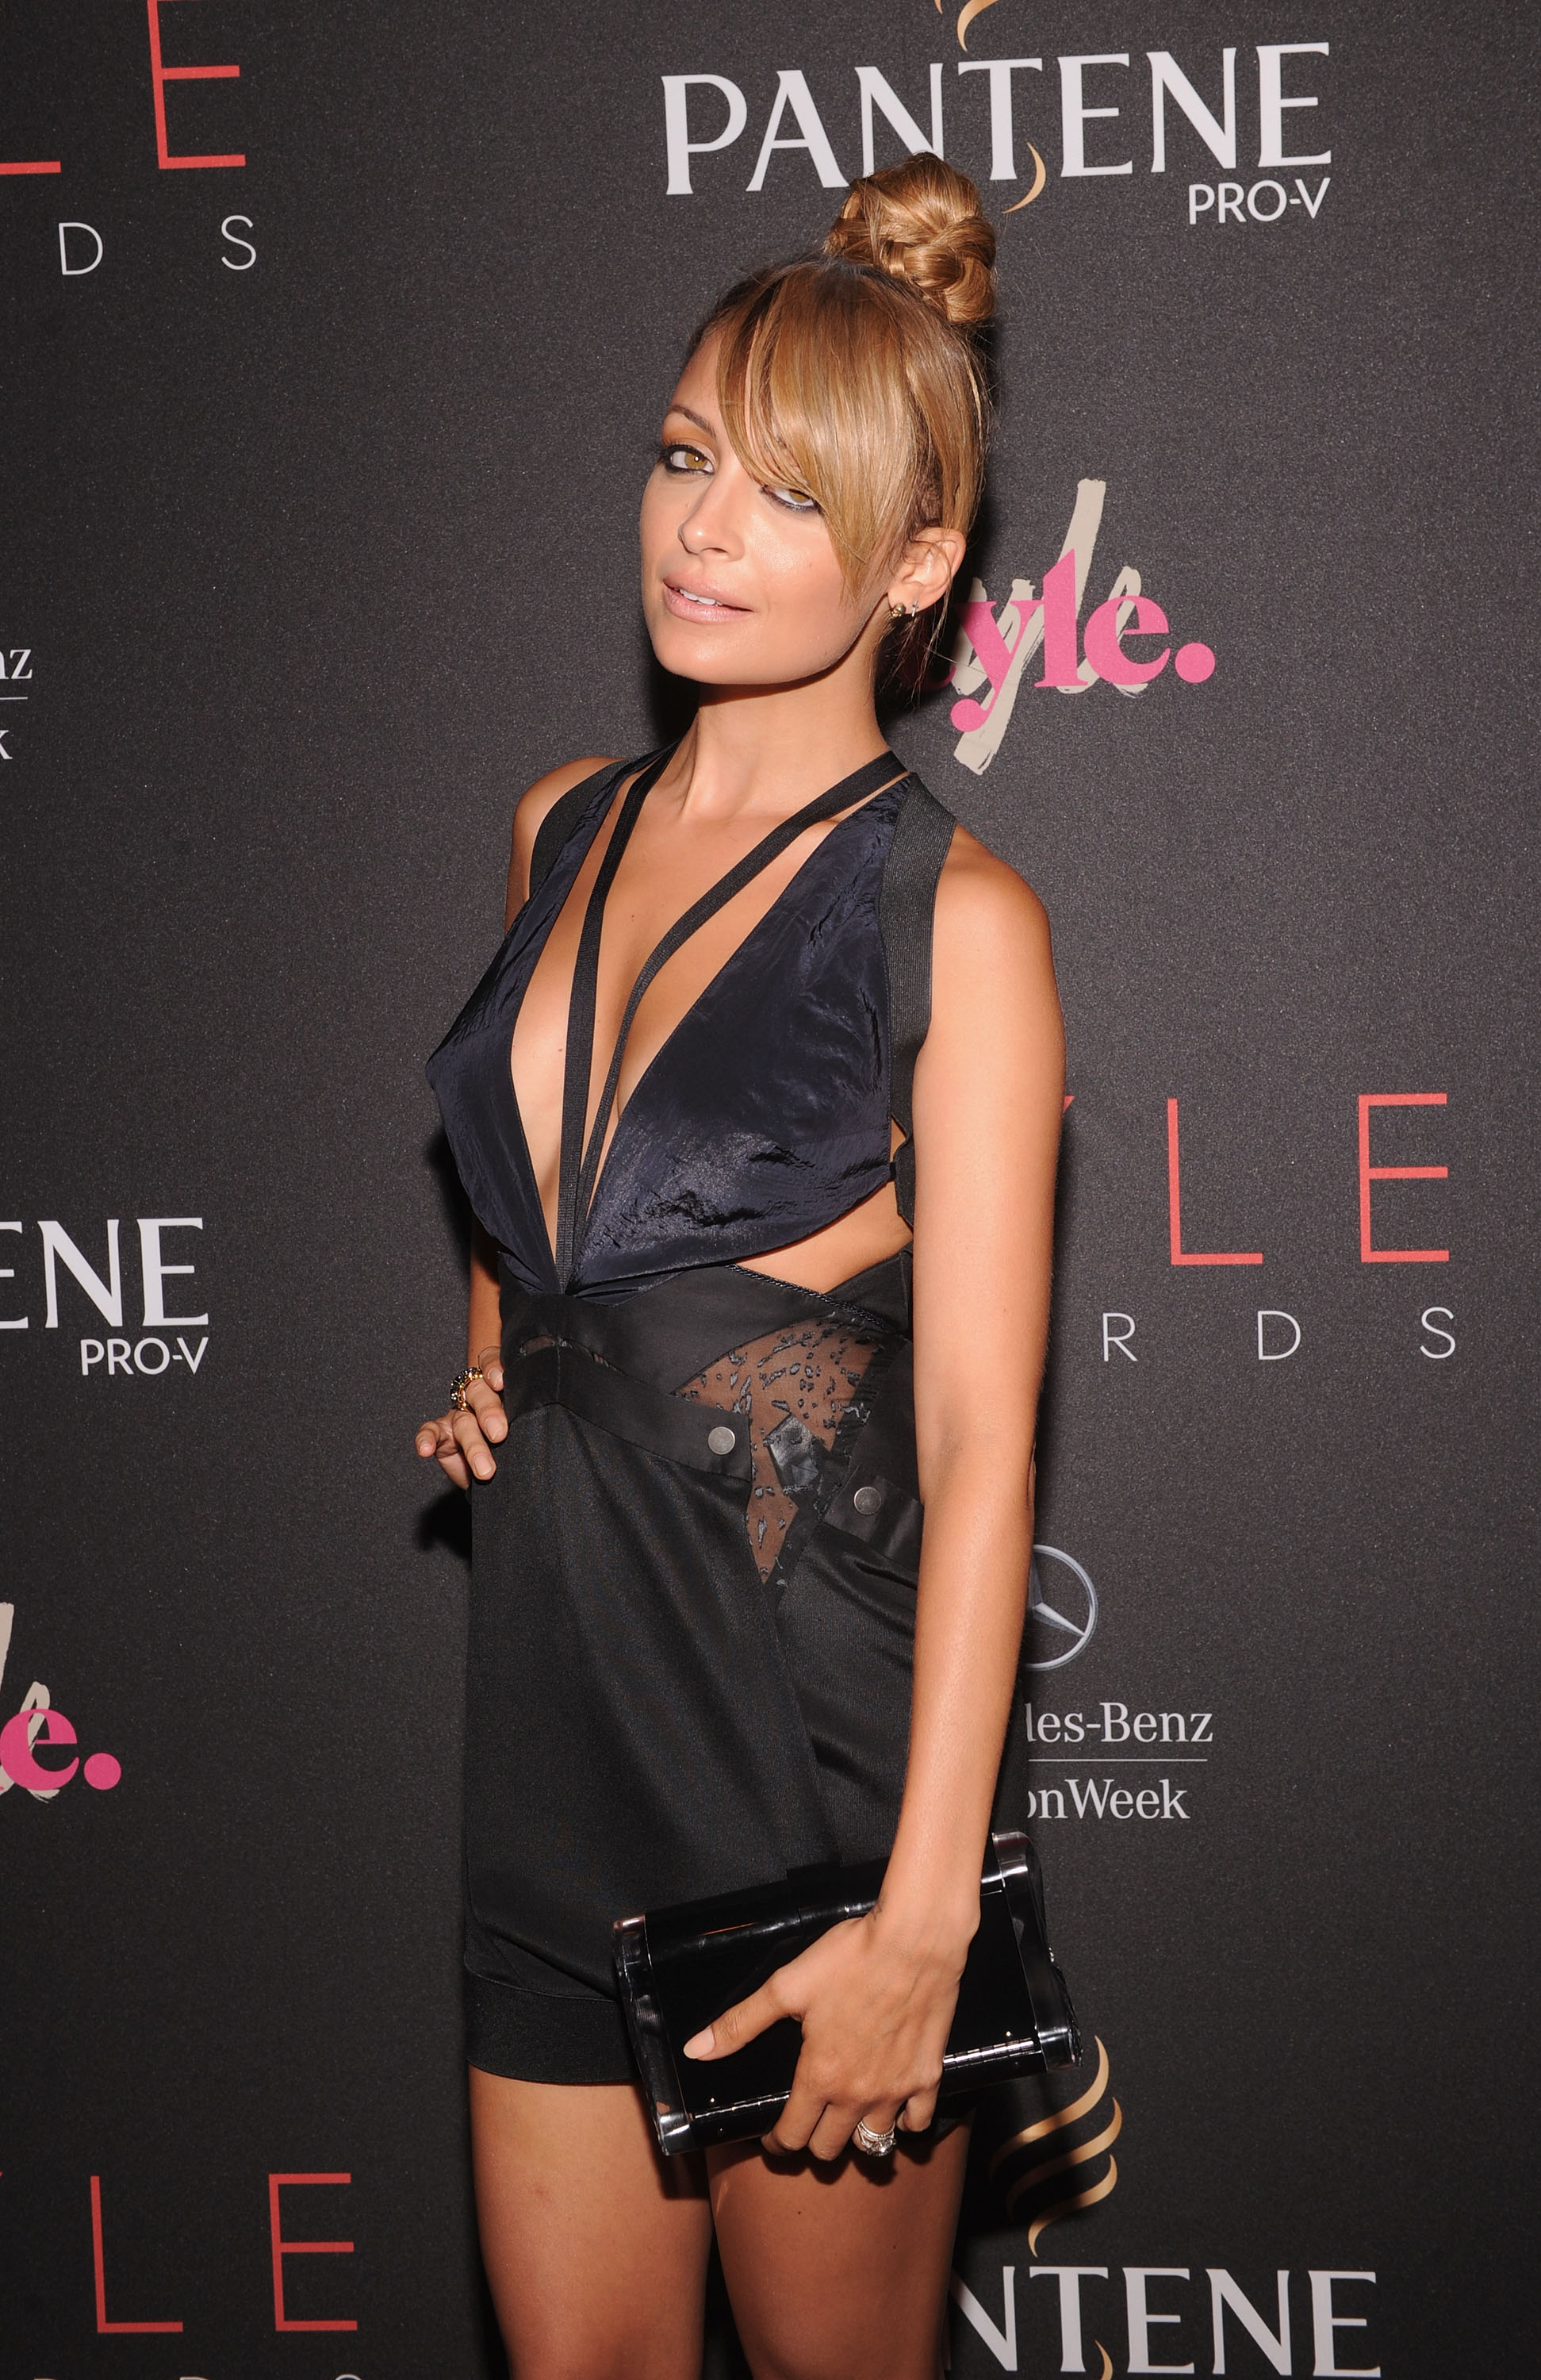 richie wore a revealing dress to the style awards